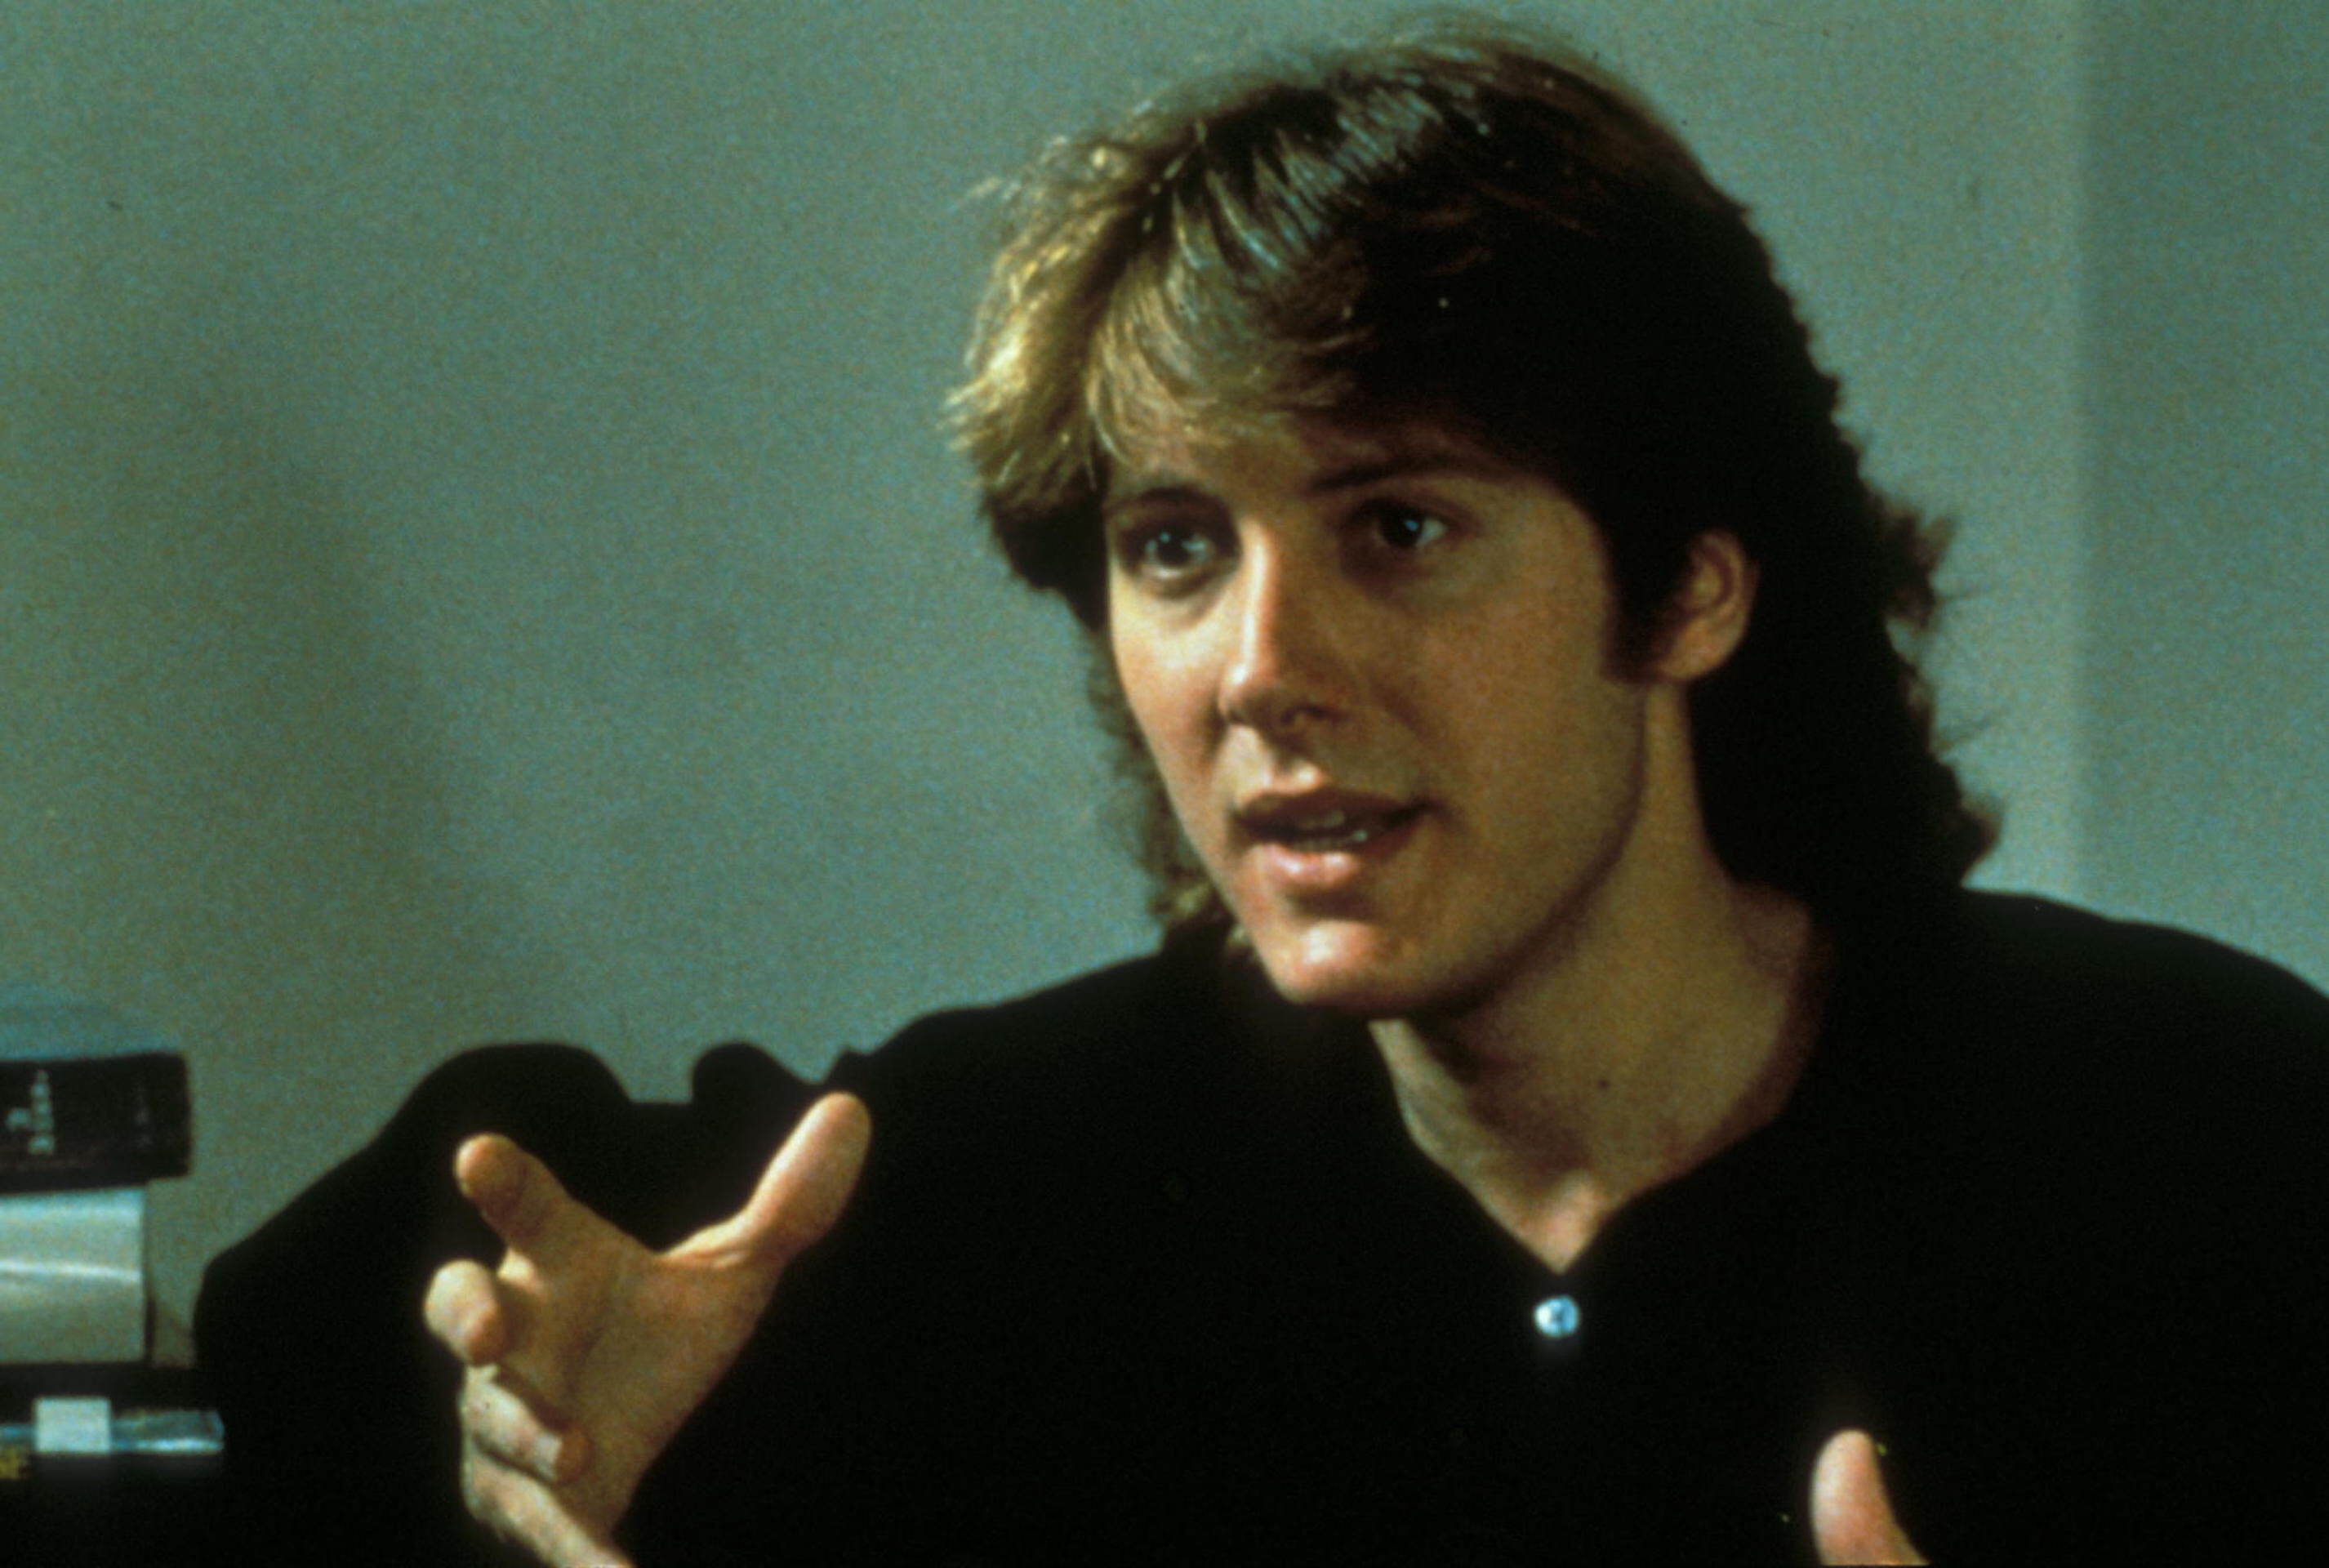 James Spader with a mullet, gesturing towards the camera